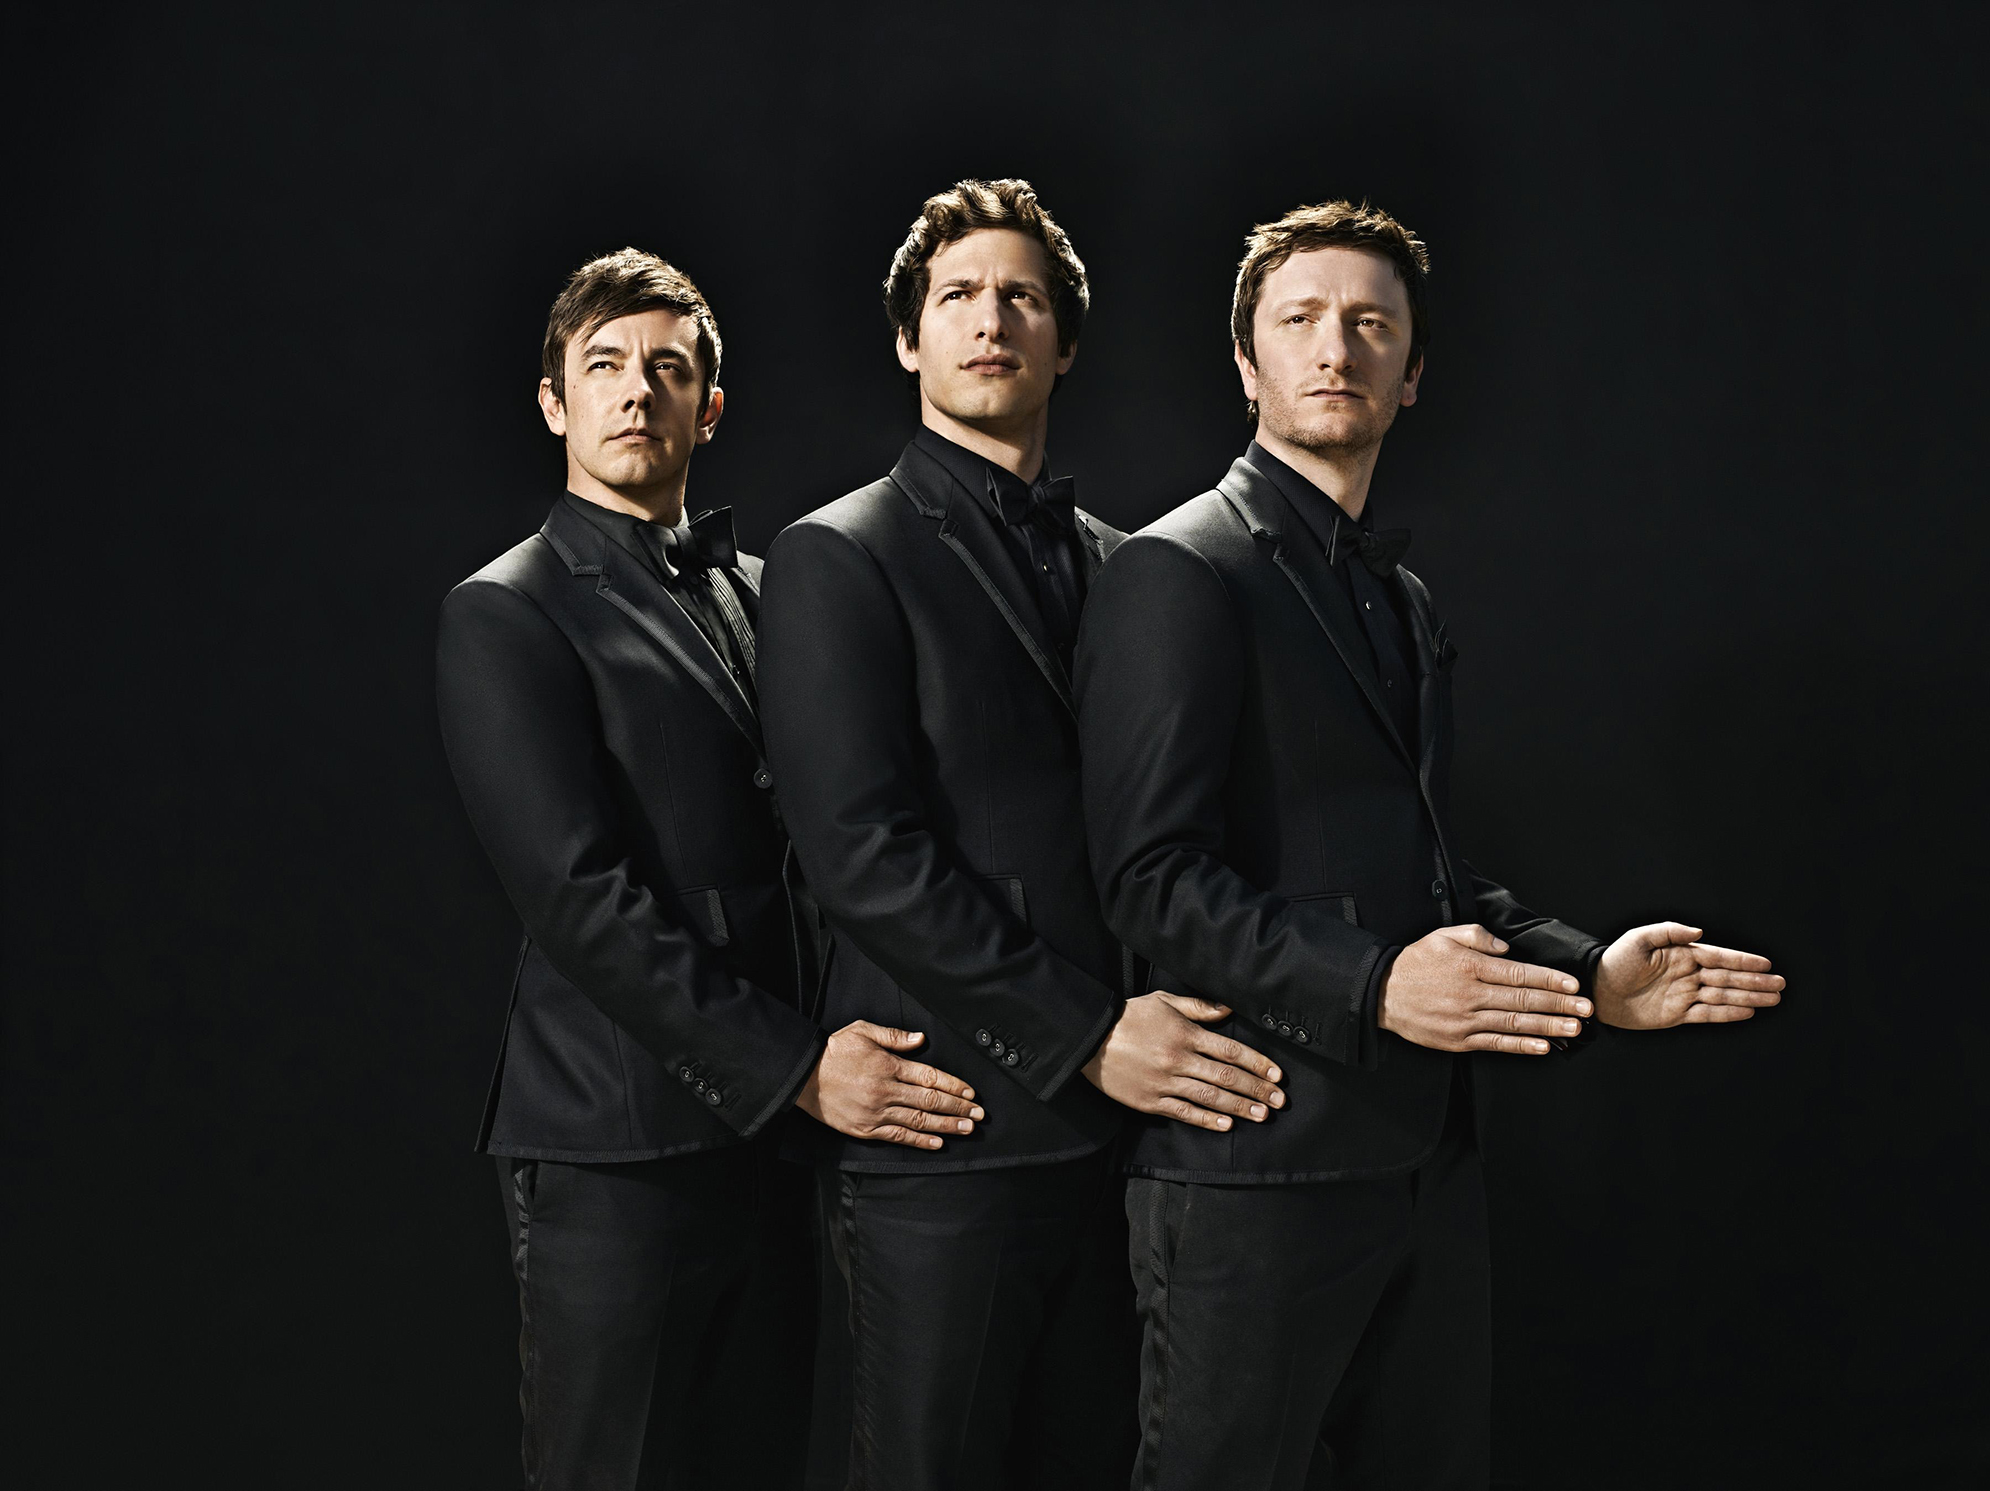 Judd Apatow Is Producing A Lonely Island Movie